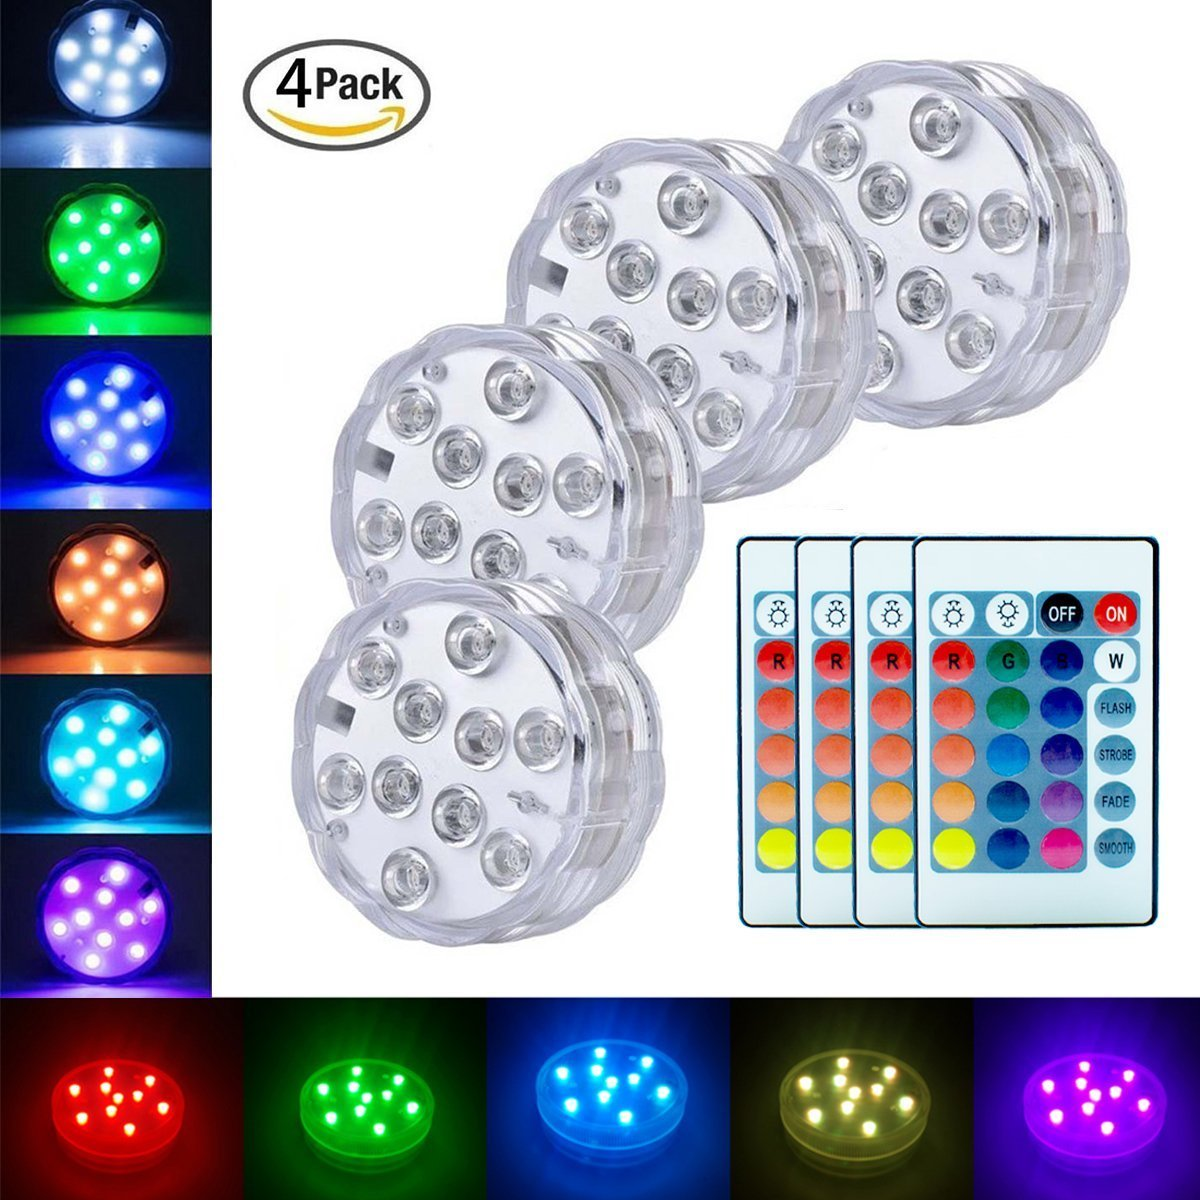 Submersible Led Lights Battery Operated Spot Lights With Remote Small Lamps Decorative Fish Bowl Light Remote Controlled Small Led Lights For Aquarium Vase Base Pond Wedding Halloween Party (4 Pack) 24Hearing